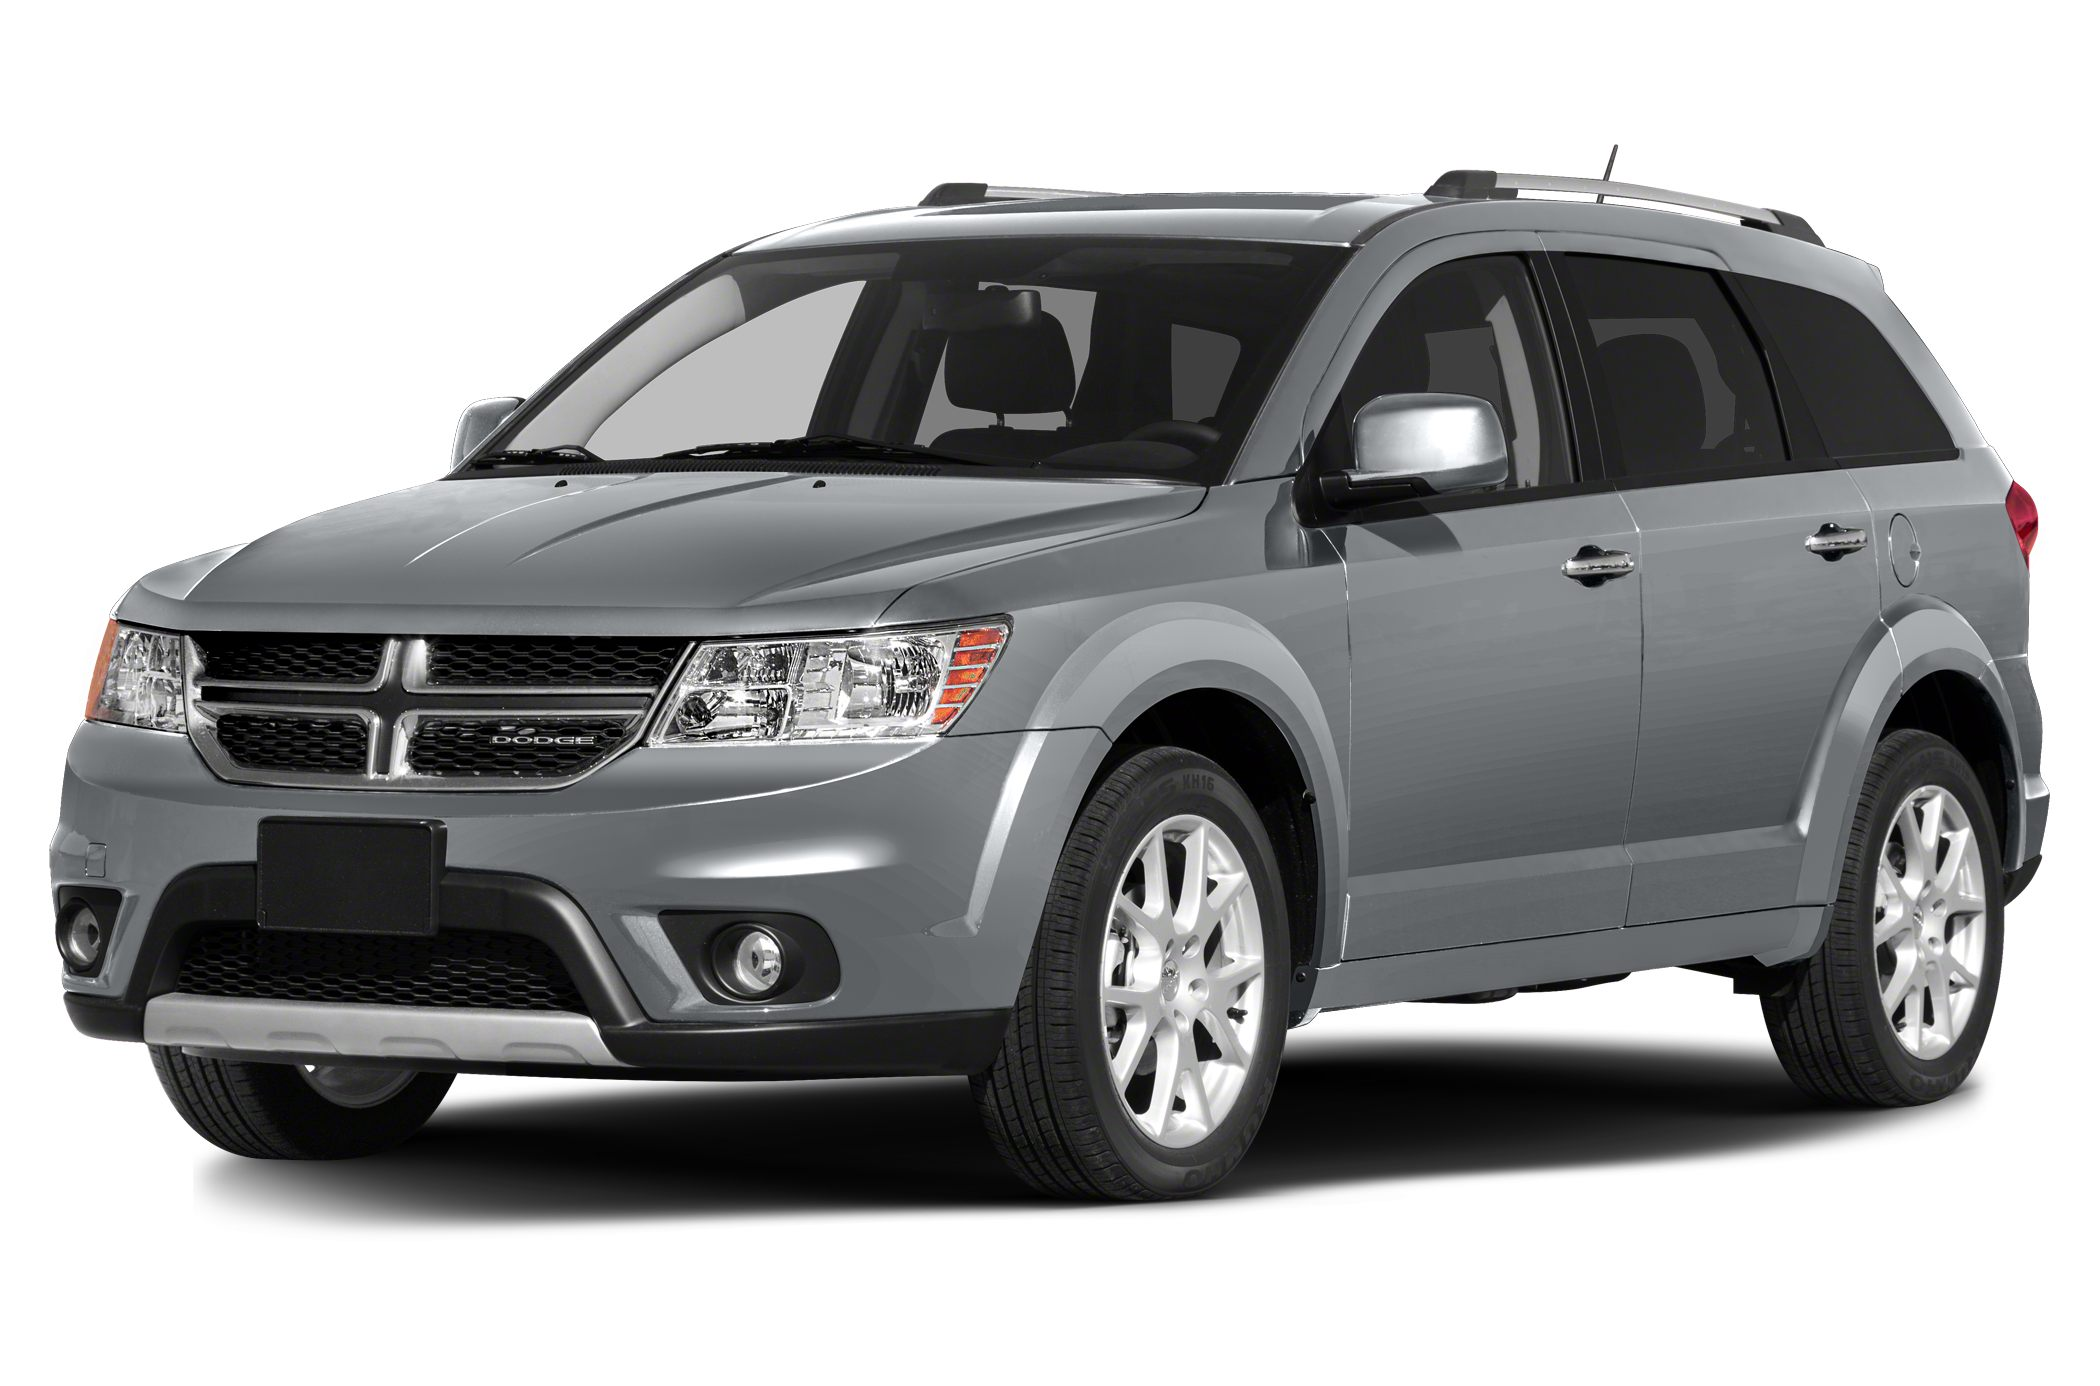 2015 Dodge Journey R/T SUV for sale in Vienna for $37,615 with 0 miles.